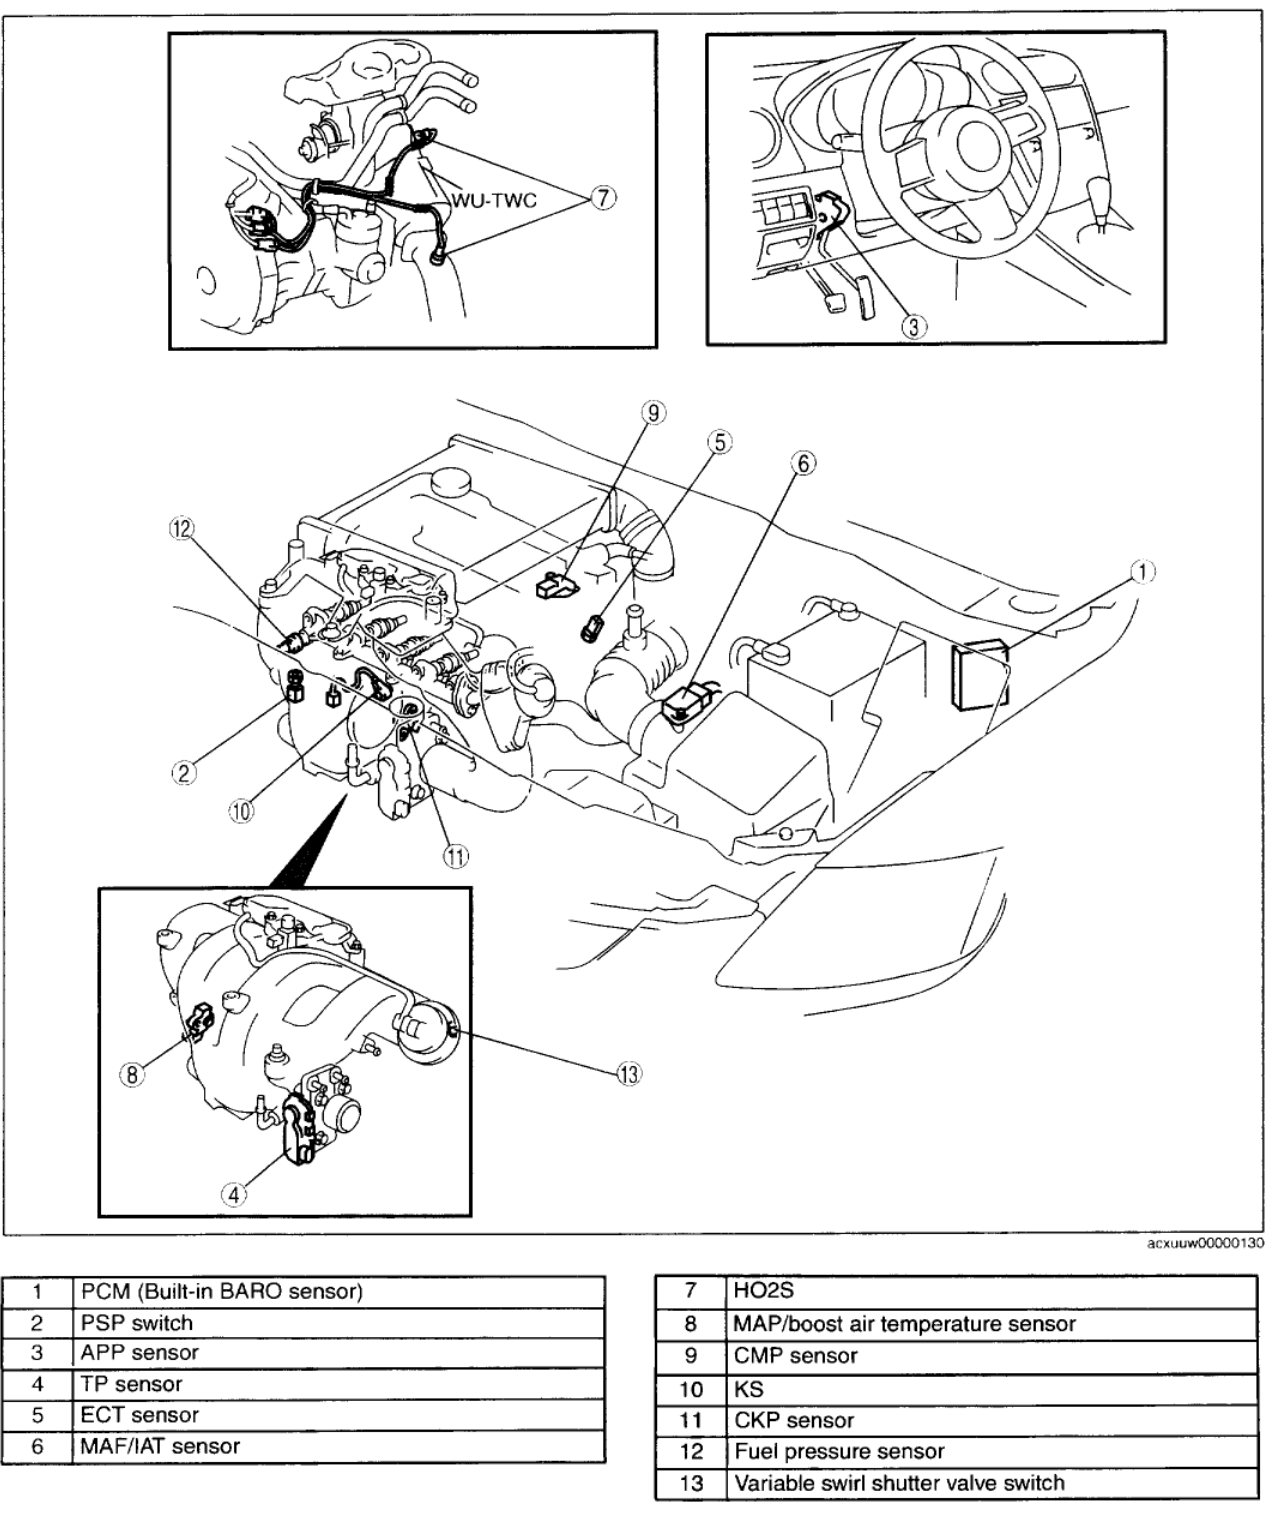 Mazda Cx 7 Engine Diagram Layout Wiring Diagrams 2007 3 Where Is The Ect Sensor Located On A Rh Justanswer Com 2008